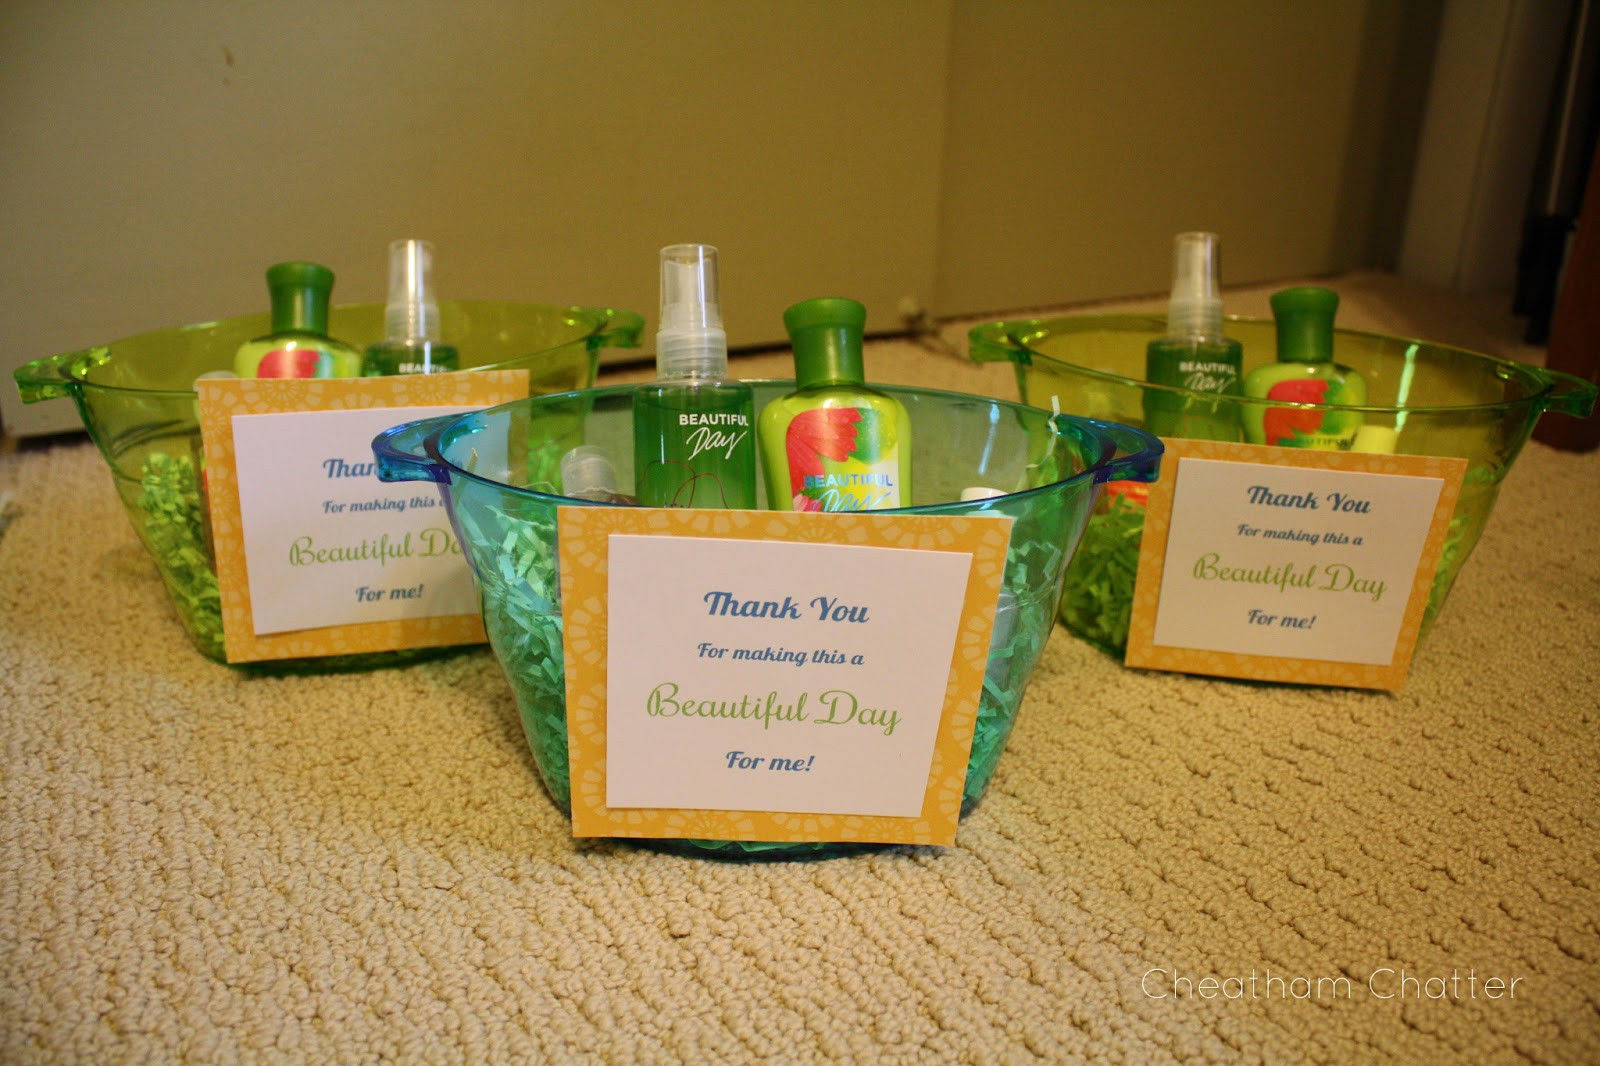 Baby Shower Hostess Thank You Gift Ideas  Cheatham Chatter Baby Shower Favors & Hostess Gifts